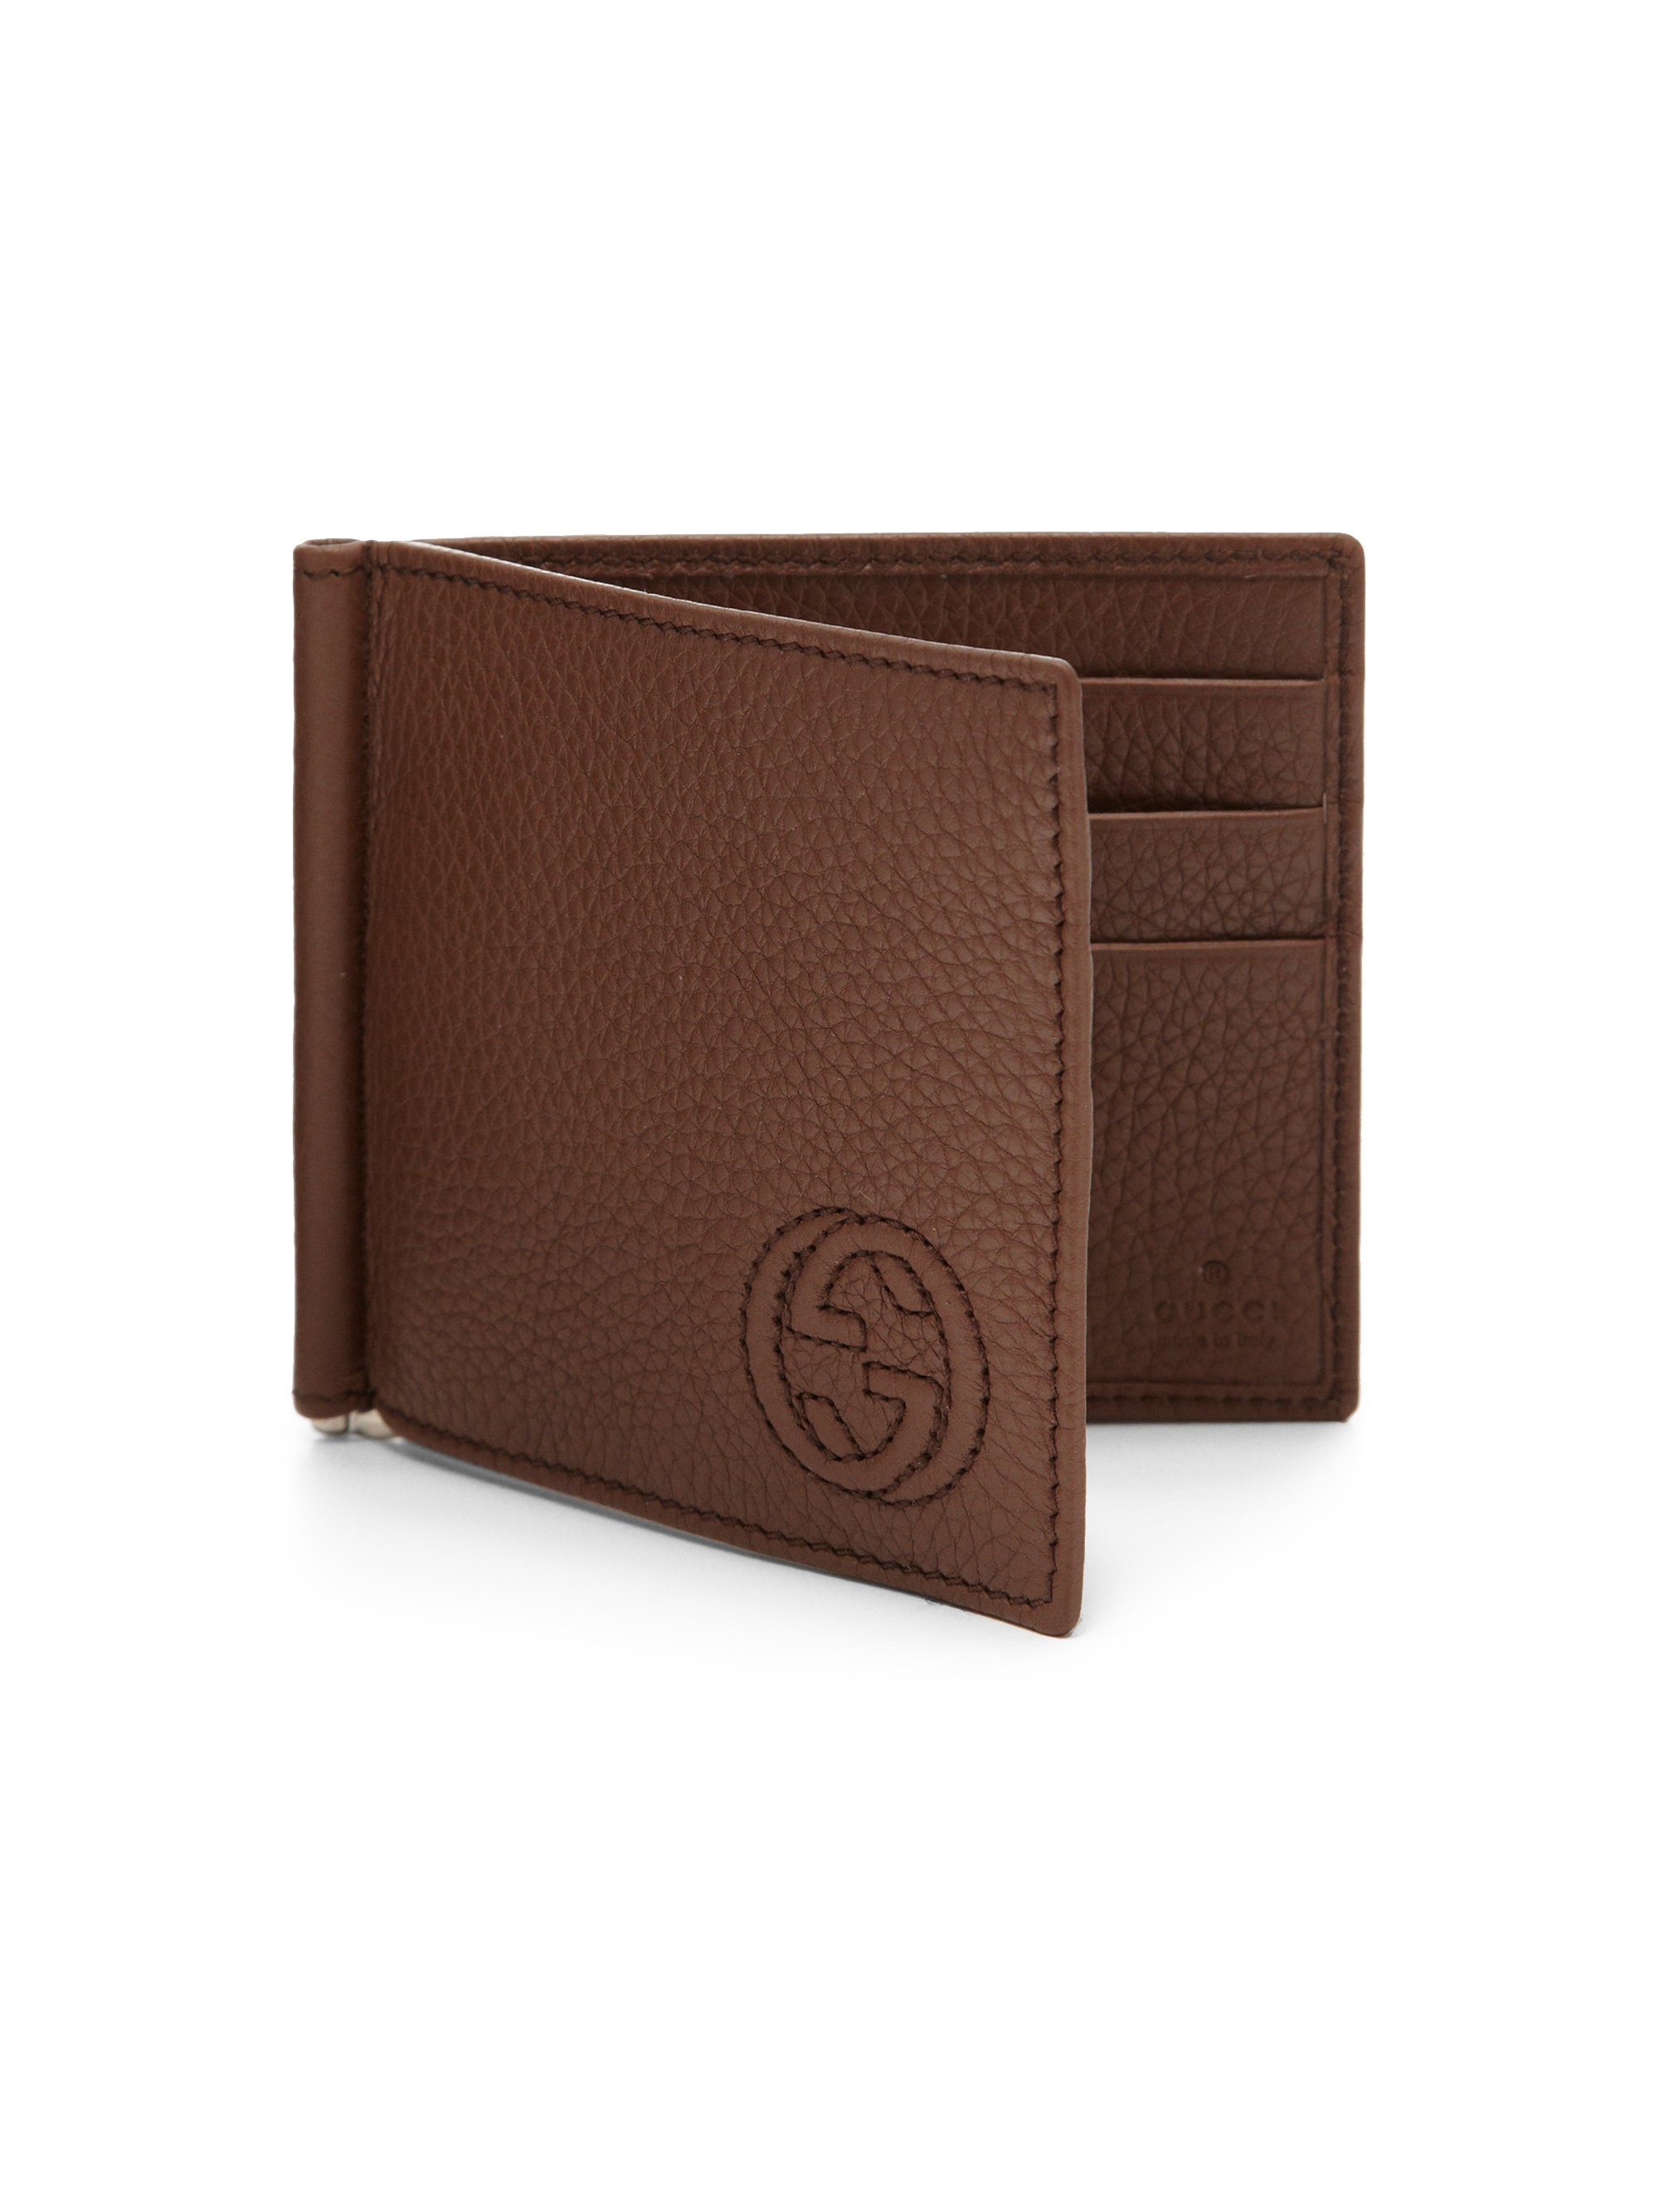 68299cc0ec3217 Gucci Soho Leather Money Clip Wallet in Brown for Men - Lyst